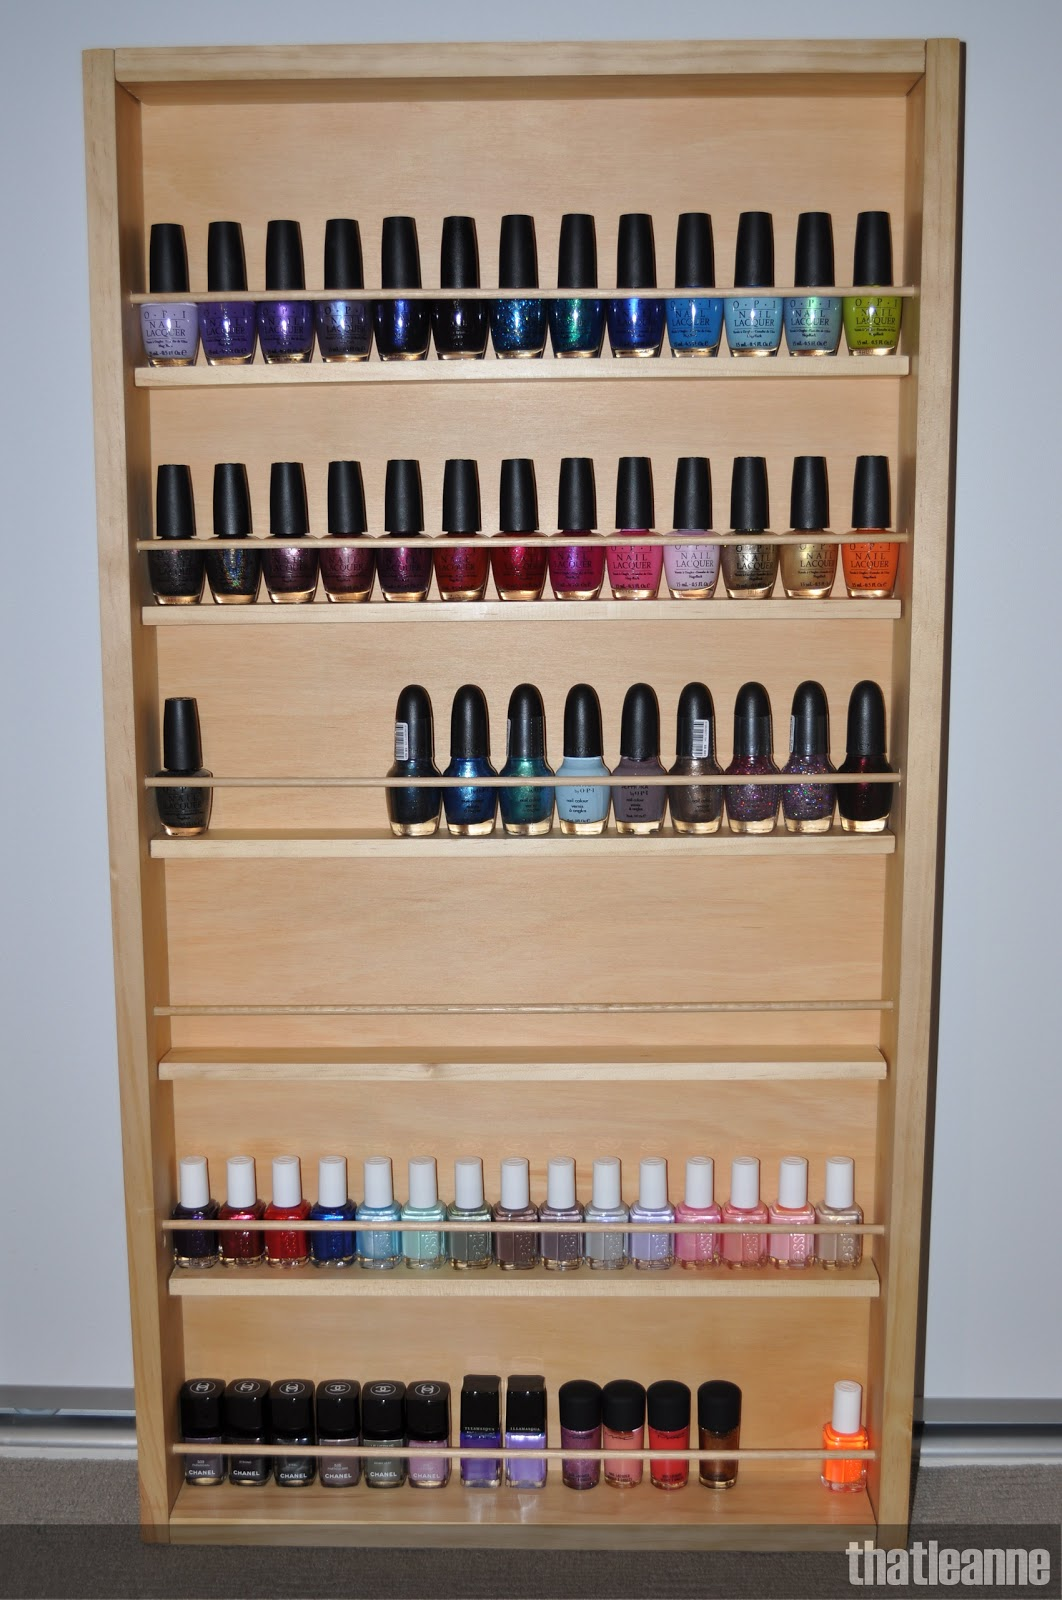 thatleanne: Nail polish organisation and storage - new storage rack!